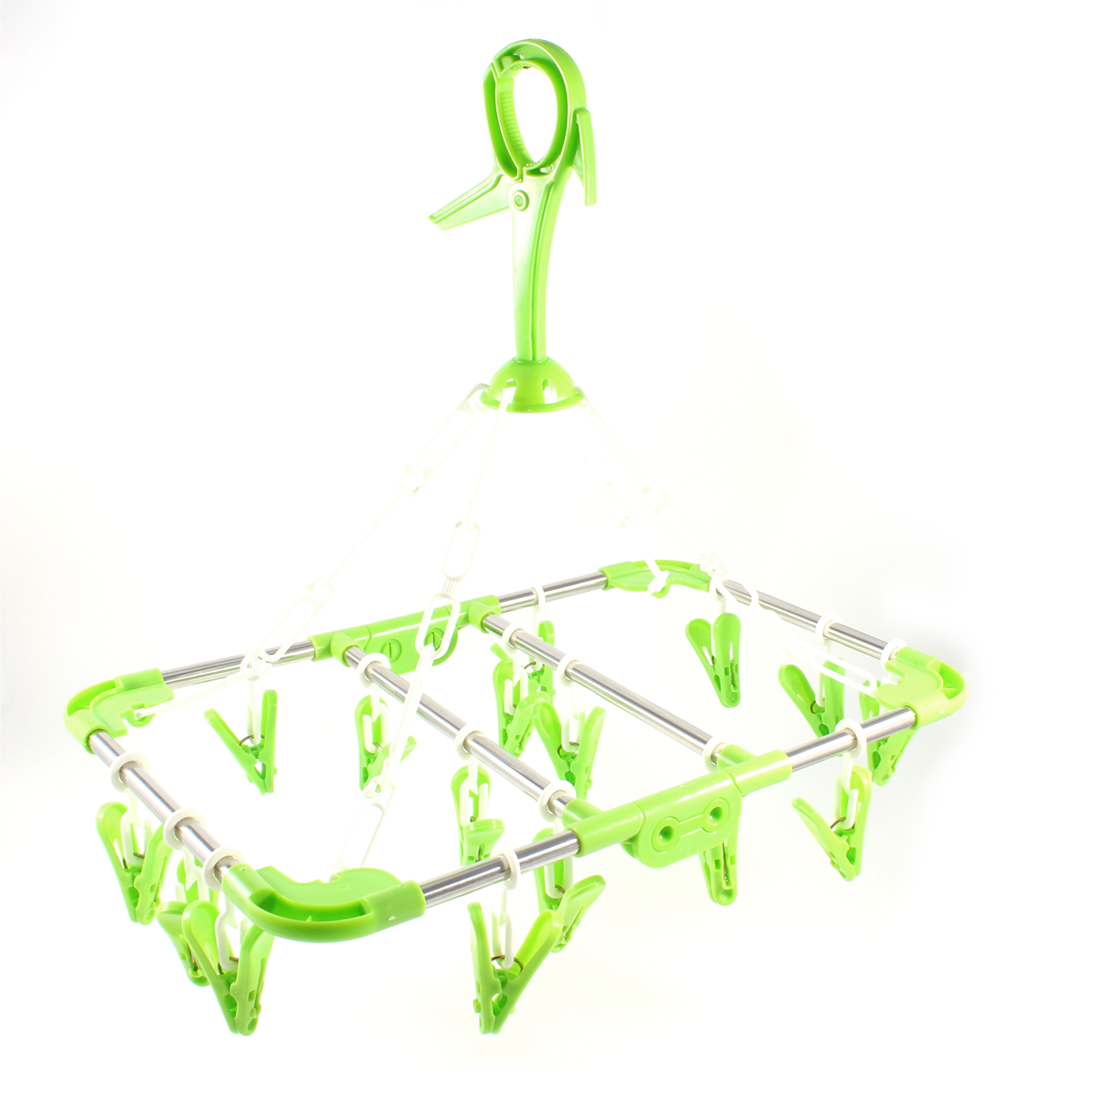 Green Folded Rectangle Frame Plastic 16 Clothespins Pegs Clothes Hanger Rack